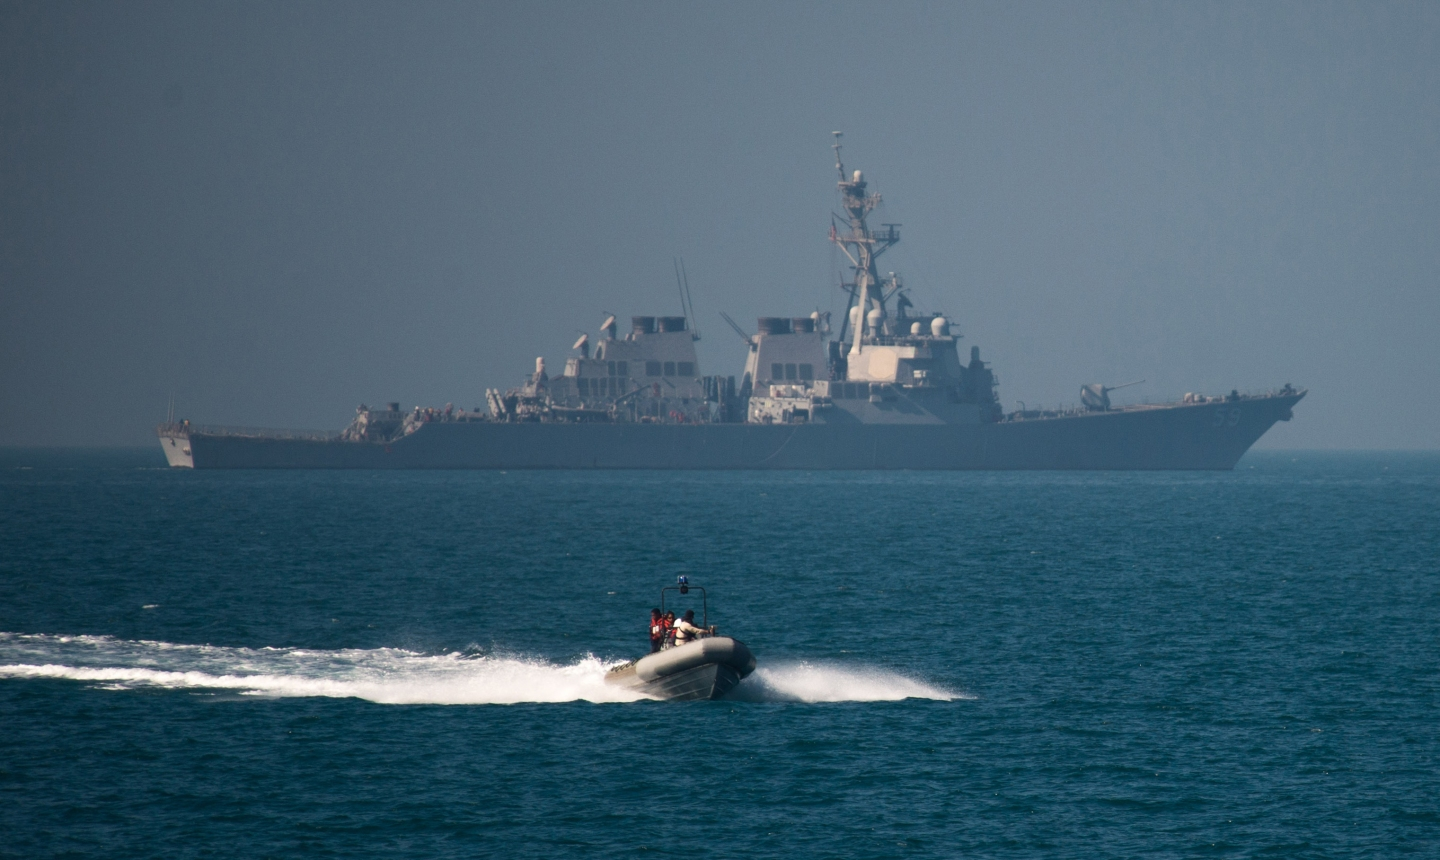 A ridged hull inflatable boat, launched from the Raleigh Burke-class guided-missile destroyer USS Russell (DDG 59), participates in a monthly Iraqi bilateral exercise. The Iraqi bilateral is a monthly exercise with U.S. Navy, U.S. Coast Guard, and the Iraqi navy. The U.S. participates in bilateral exercises with partner nations in order to build and strengthen solid partnerships throughout the region. Commander, Task Force 55 controls surface forces including U.S. Navy coastal patrol craft and U.S Coast Guard patrols boats in the U.S. 5th Fleet area of operations. (U.S. Navy Combat Camera photo by Mass Communication Specialist 2nd Class Torrey W. Lee/Released)160214-N-CJ186-187